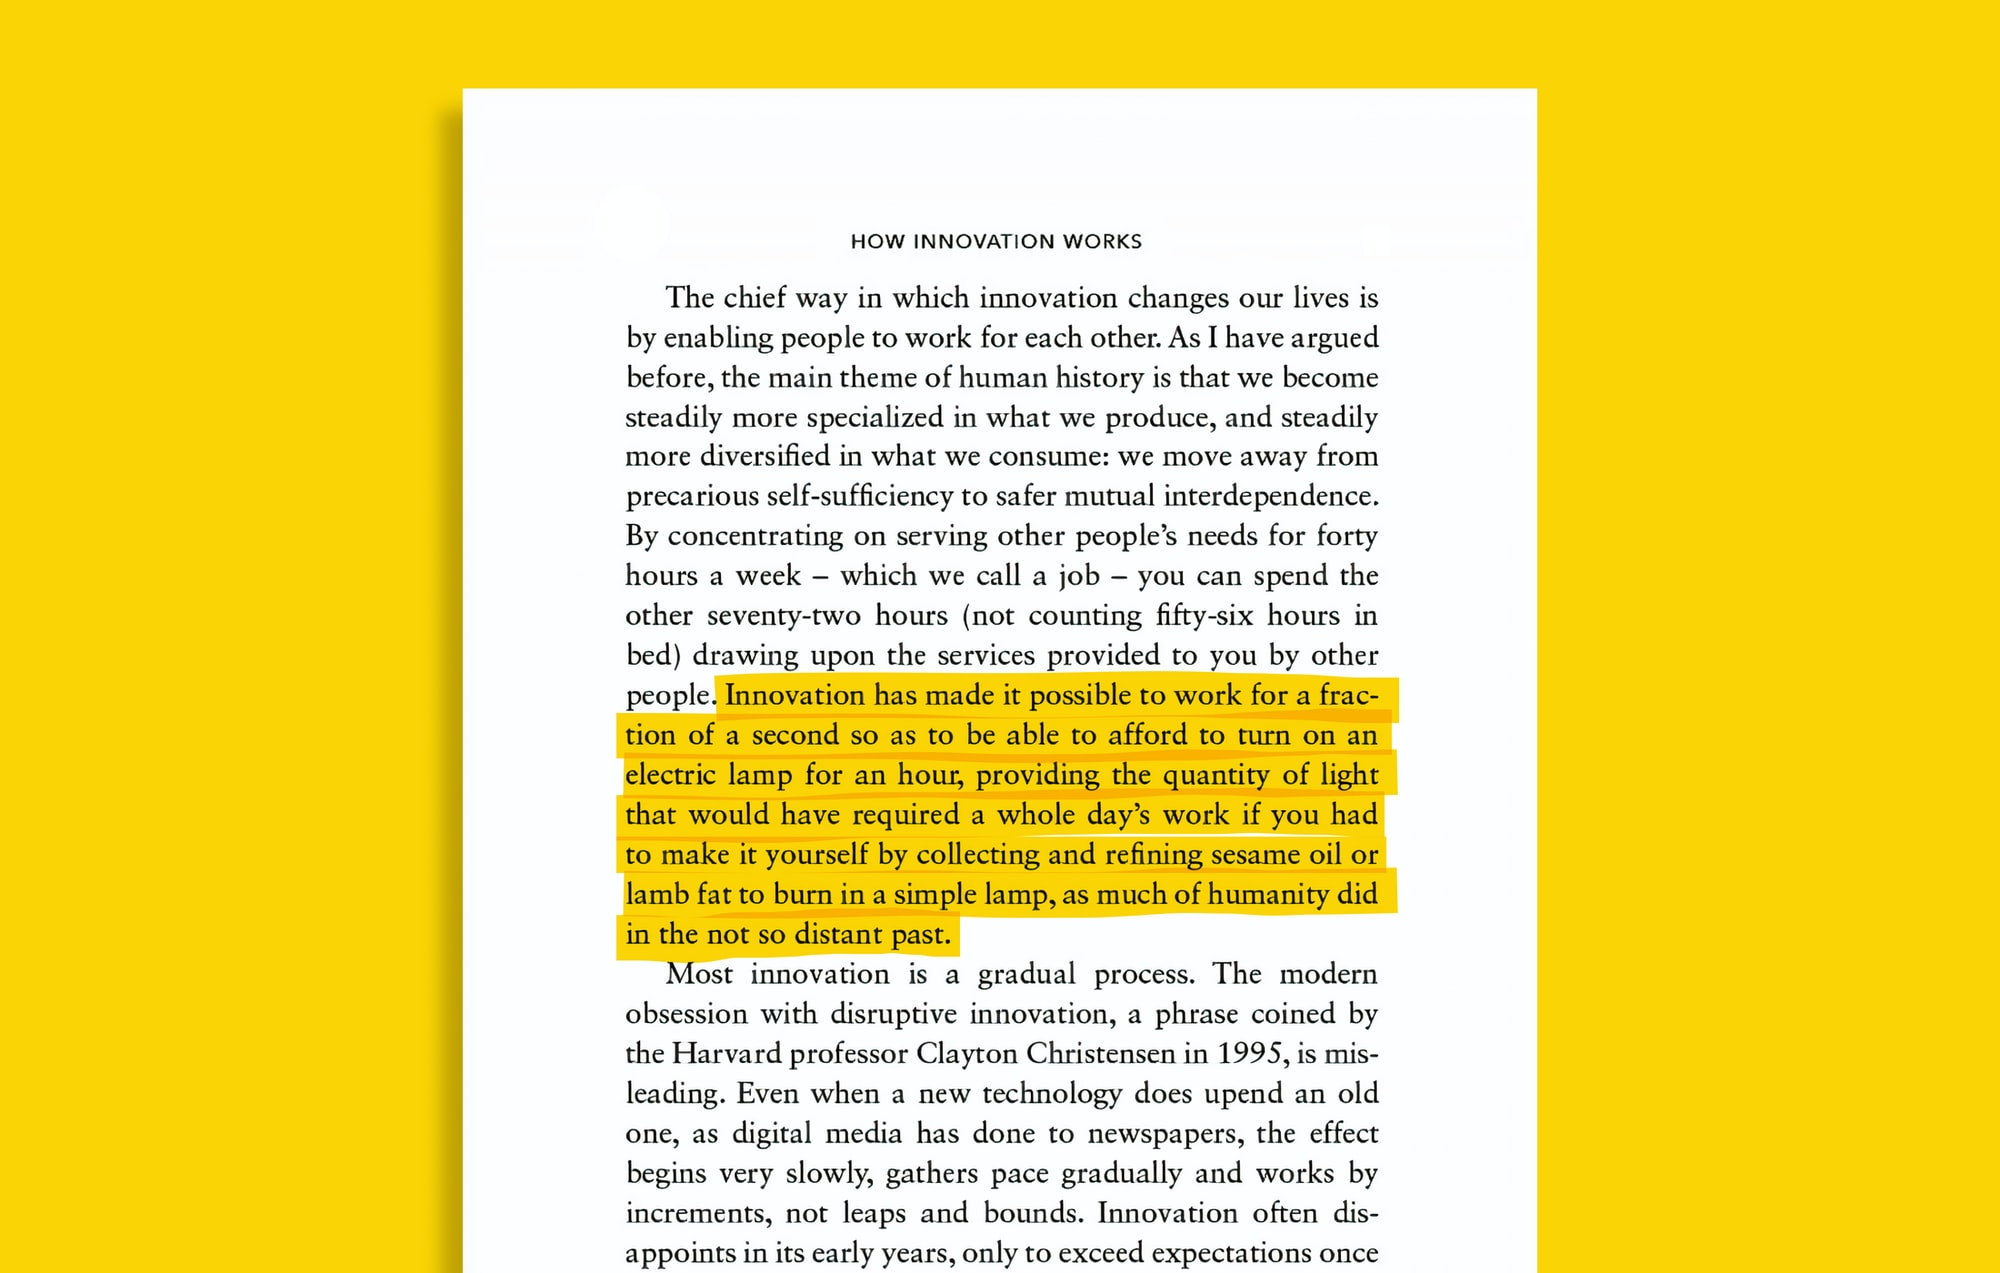 Building on his national bestseller The Rational Optimist, Matt Ridley chronicles the history of innovation, and how we need to change our thinking on the subject.